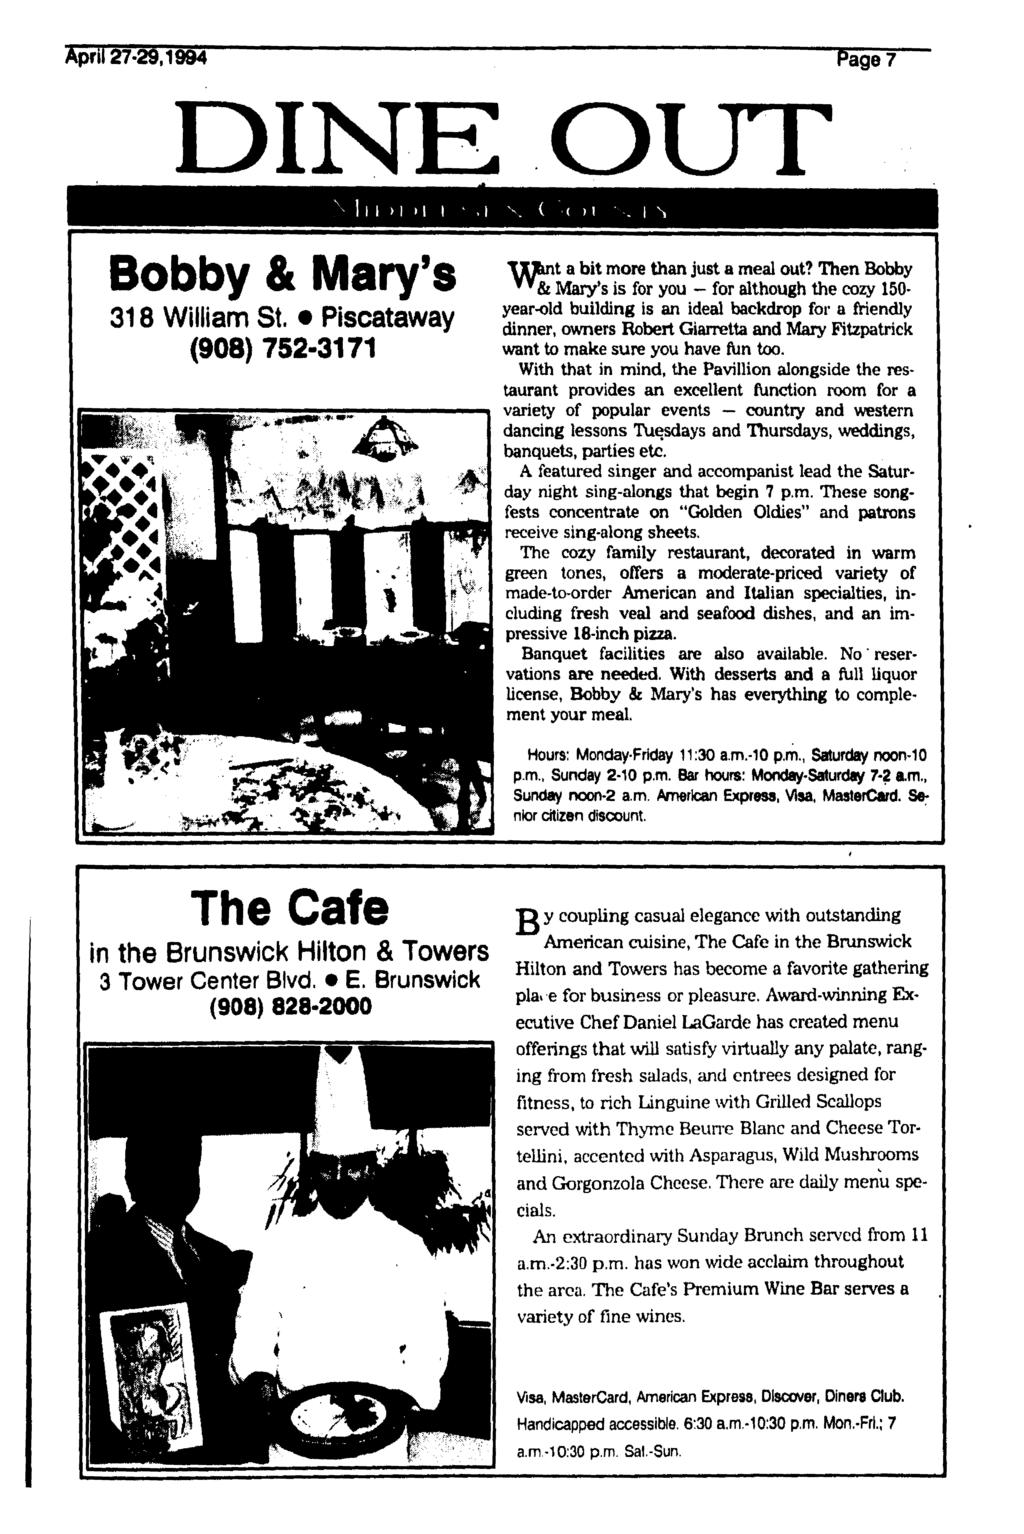 April 27-29,1994 Page 7 DINE OUT 1 I I > 1 M I,1 N Bobby & Mary's 318 William St. Piscataway (908) 752-3171 TXl&nt a bit more than just a meal out?